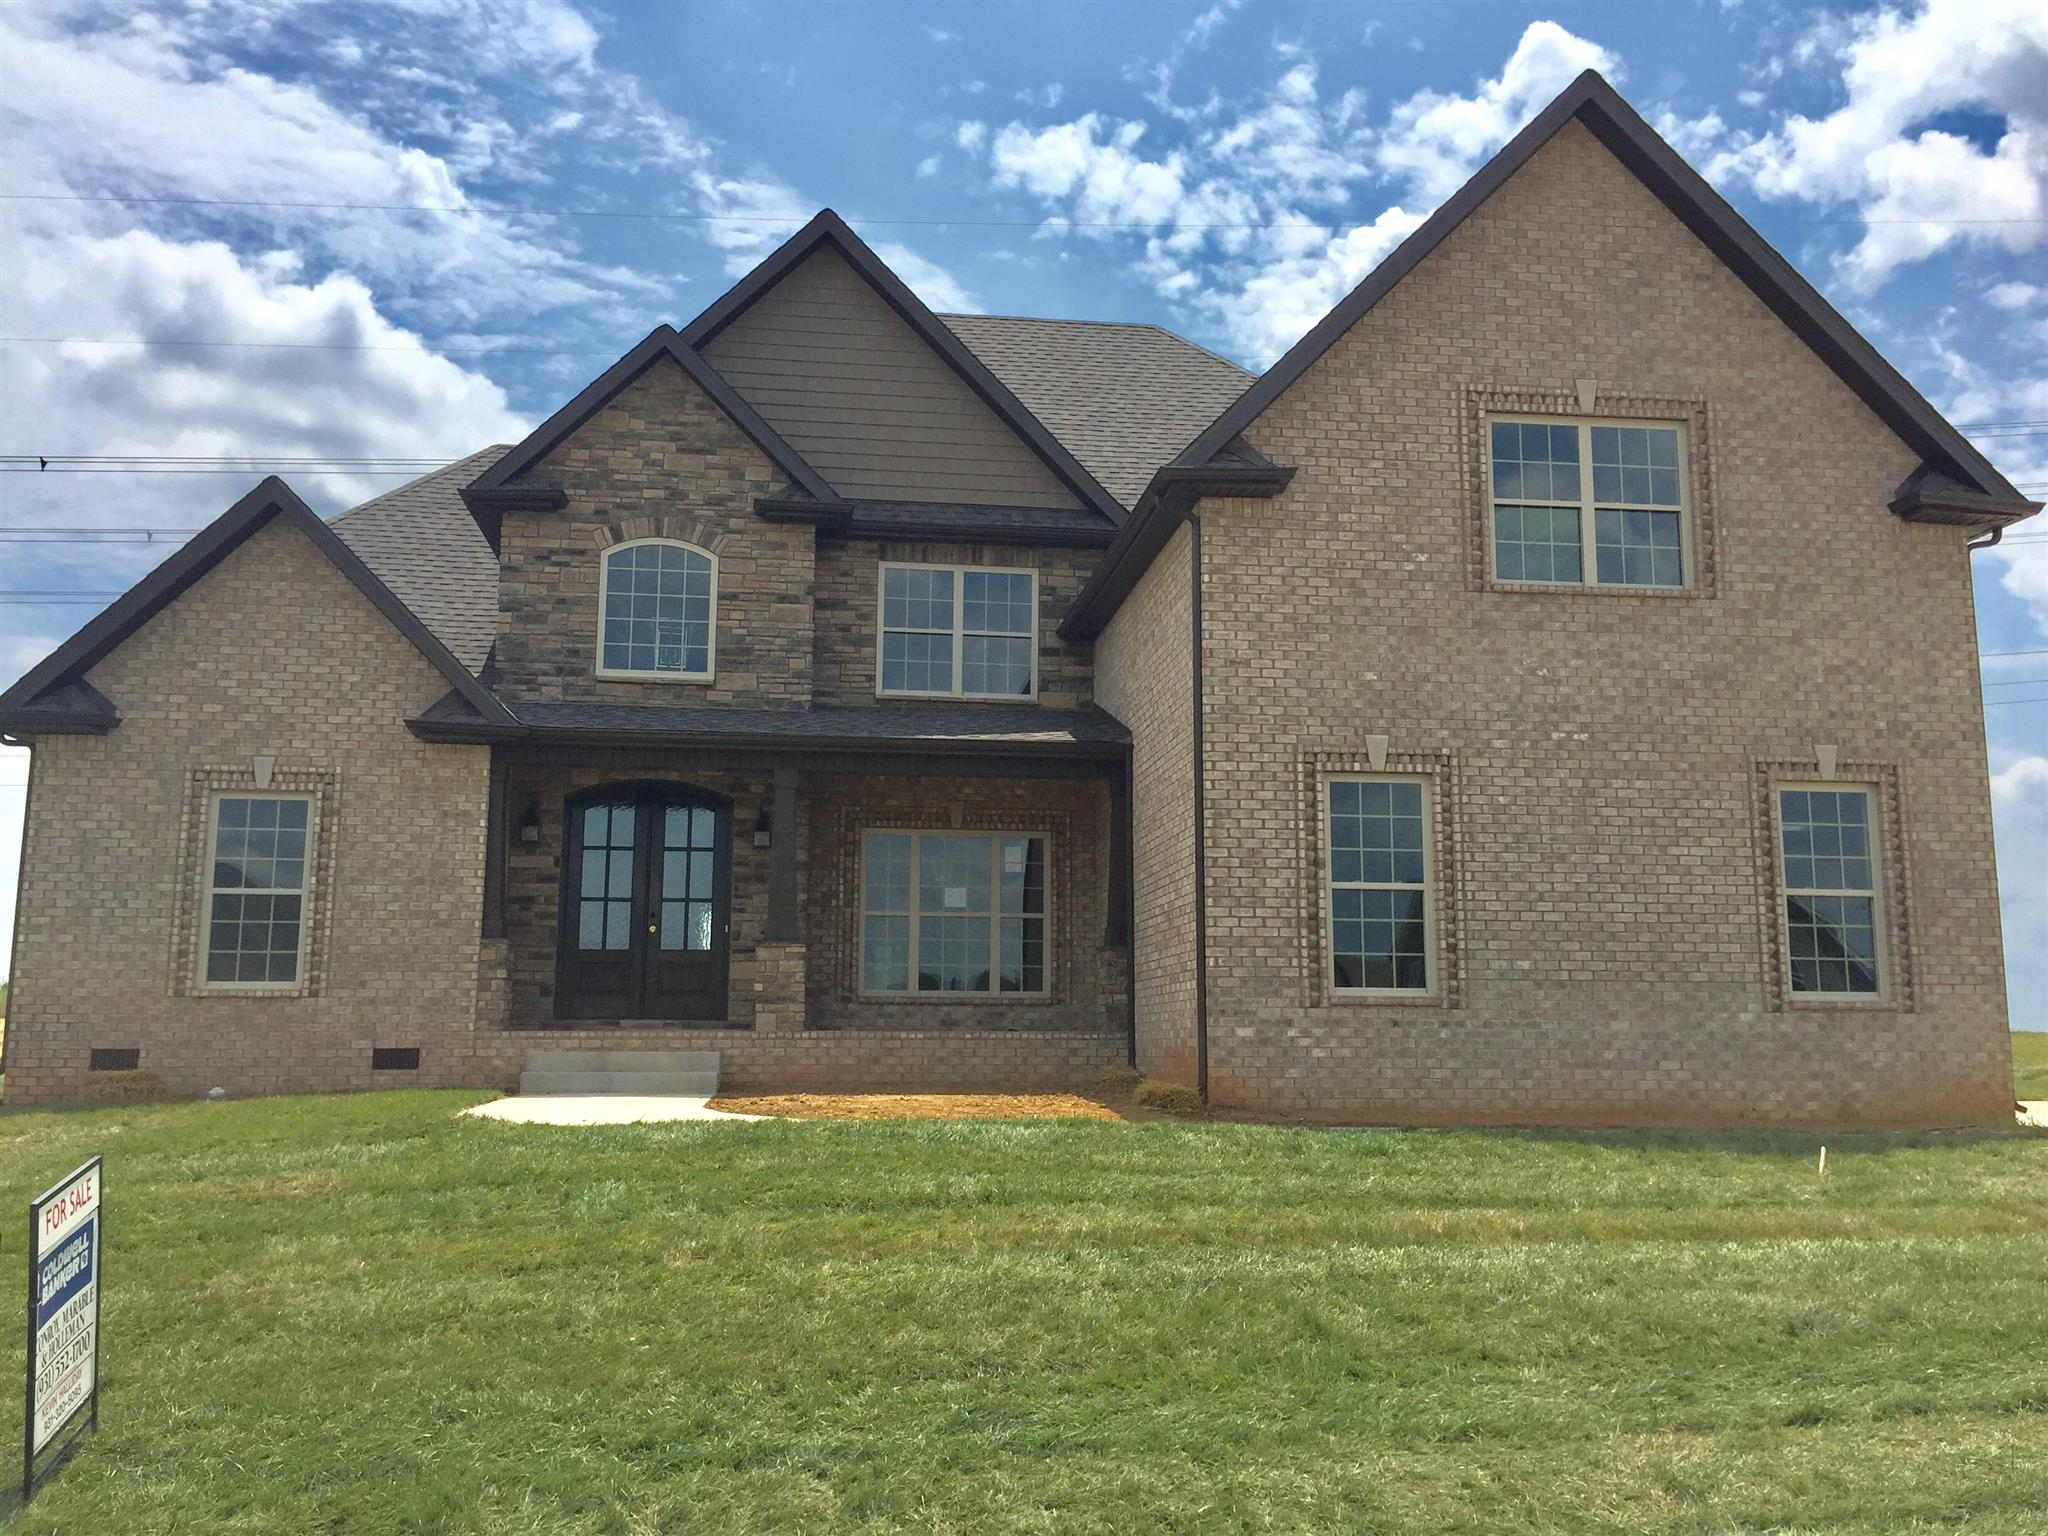 34 Hartley Hills(Boyer Farms), Clarksville, TN 37043 - Clarksville, TN real estate listing